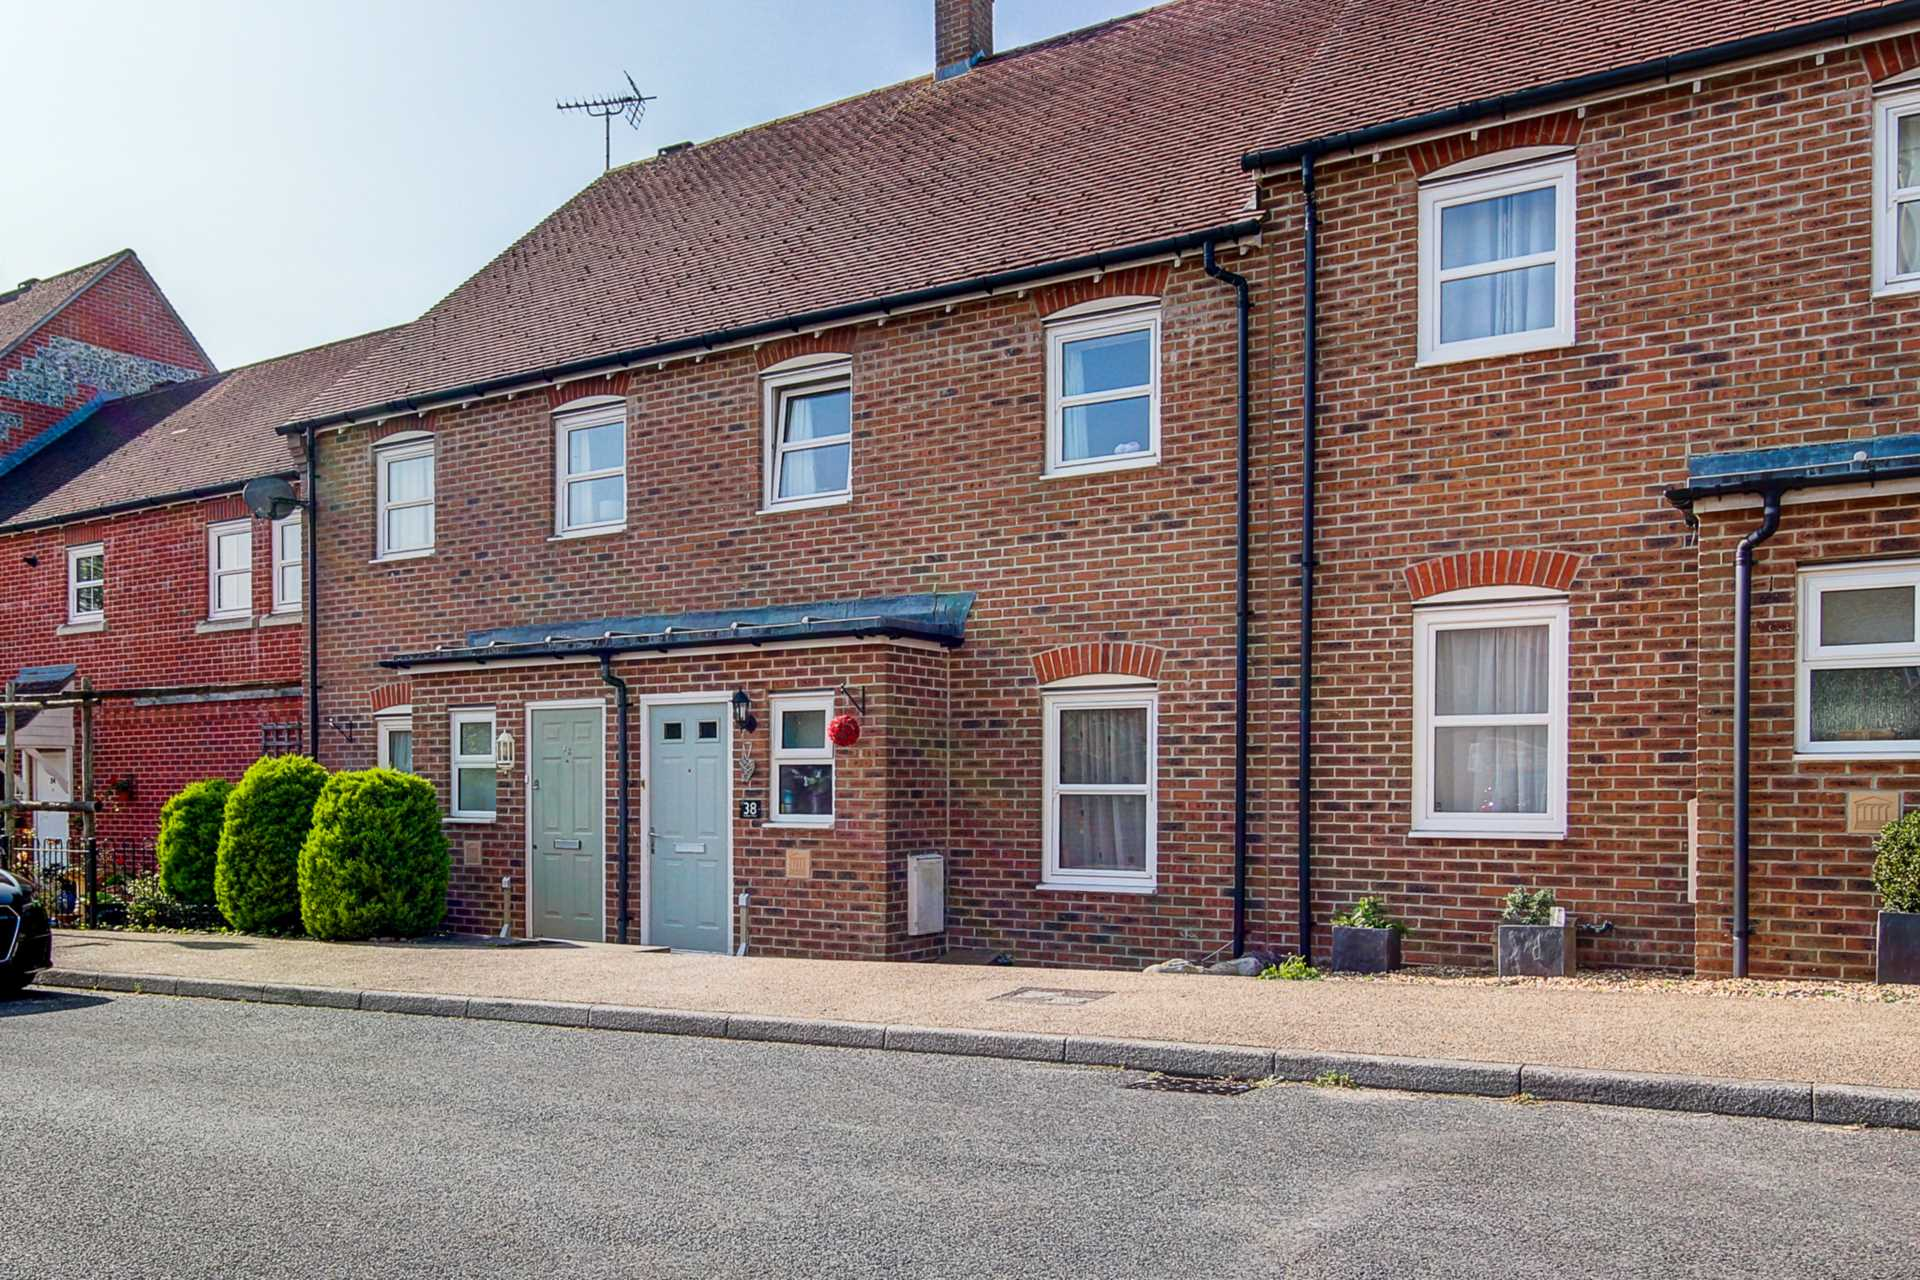 3 bed terraced house for sale in Cobham Road, Blandford Forum 0